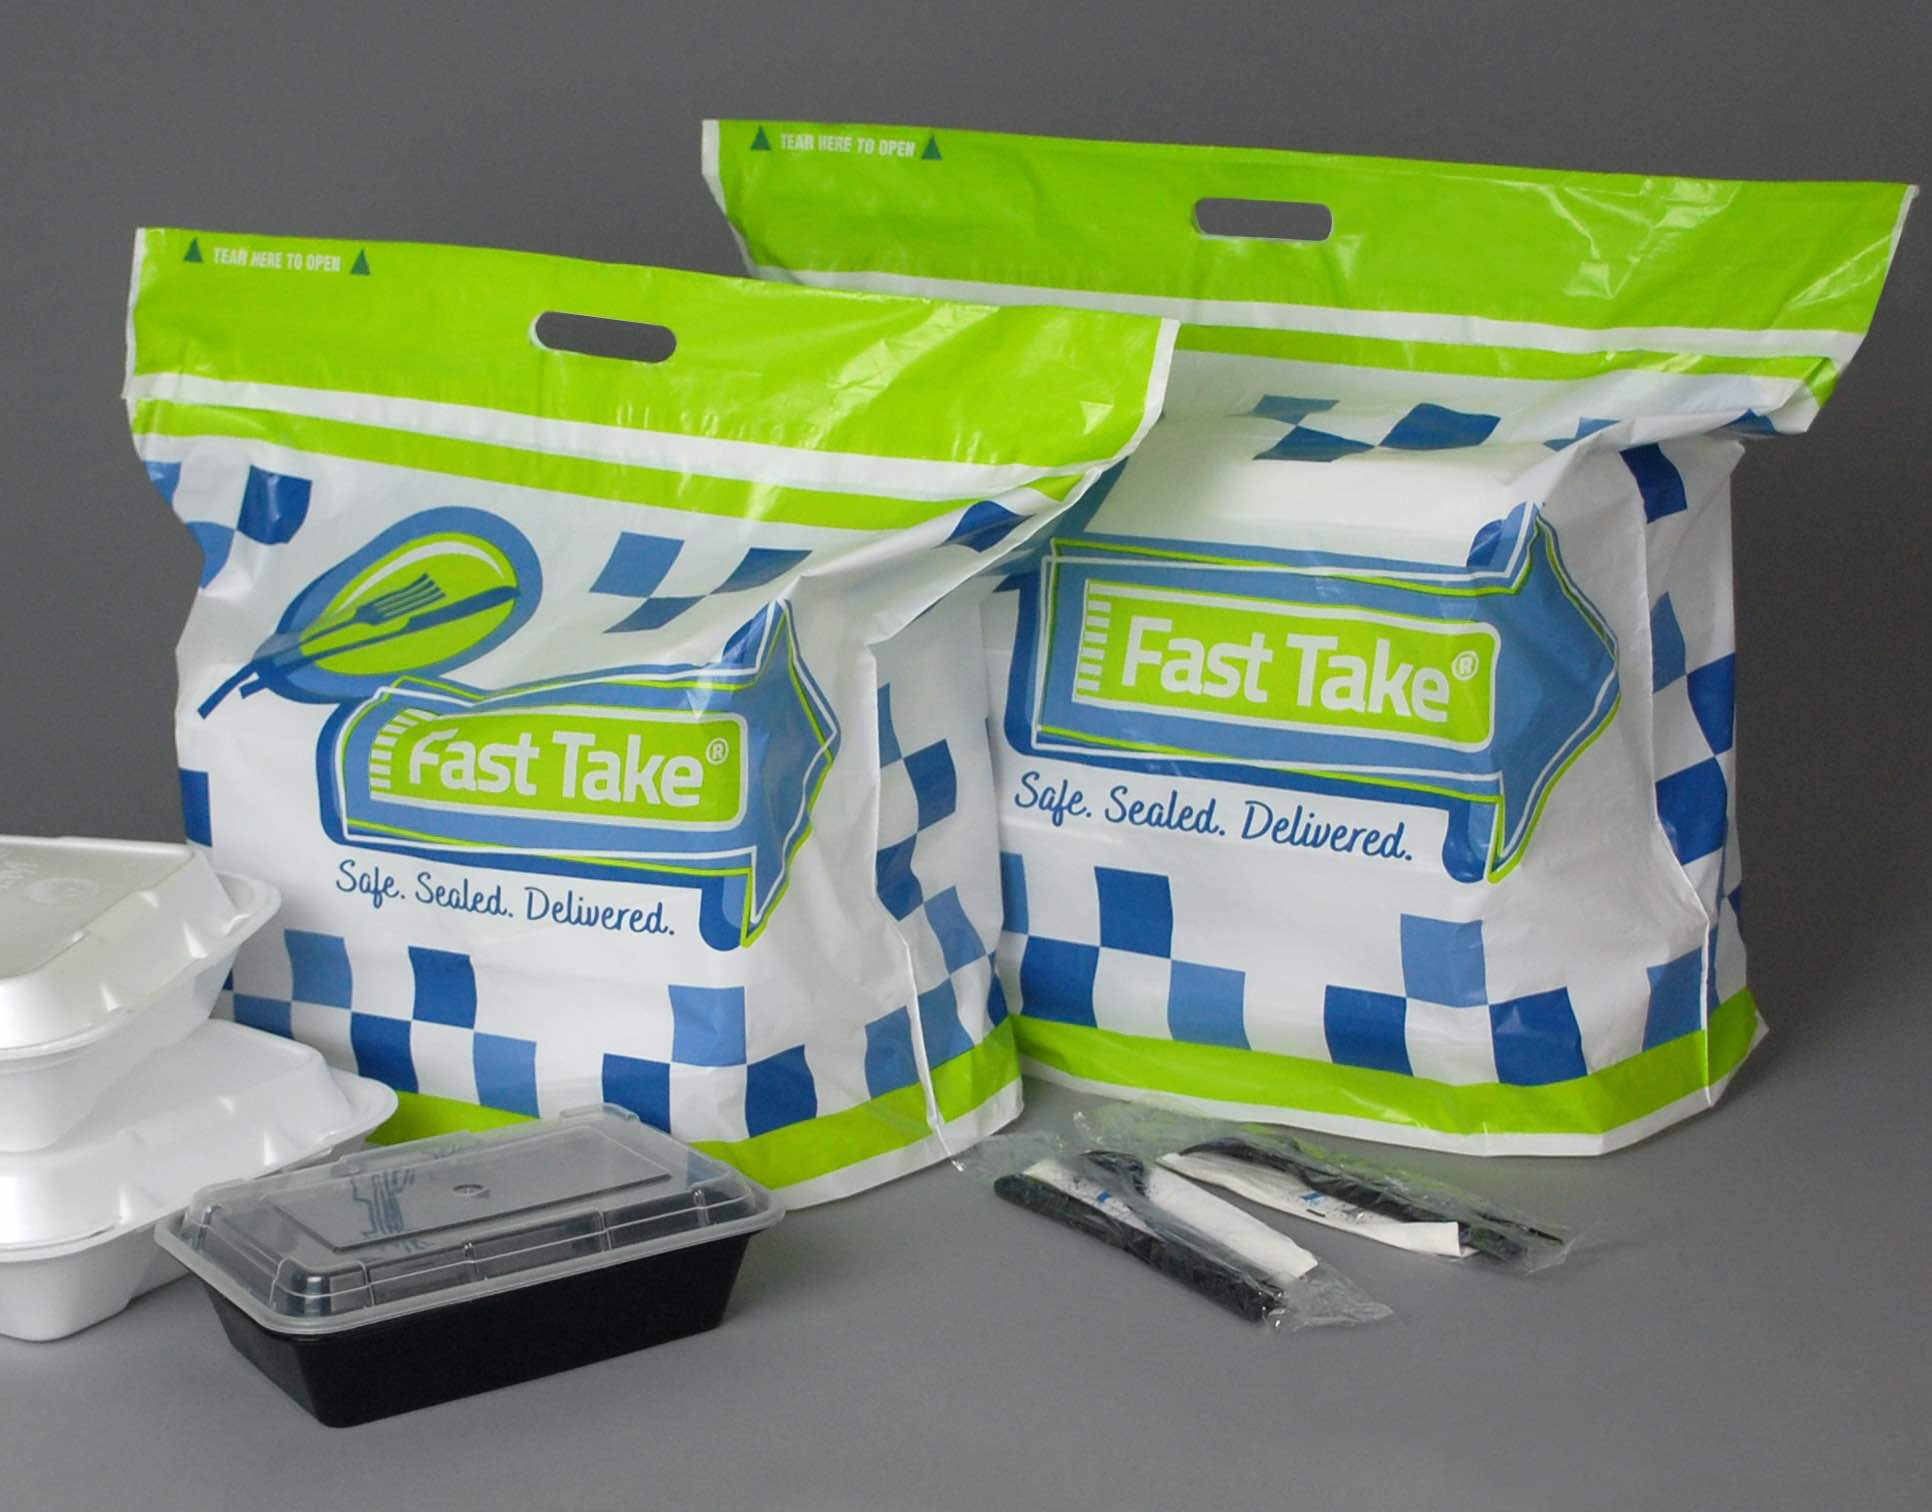 Fast Take Tamper Evident Delivery Carryout Bag - Branded, Kit